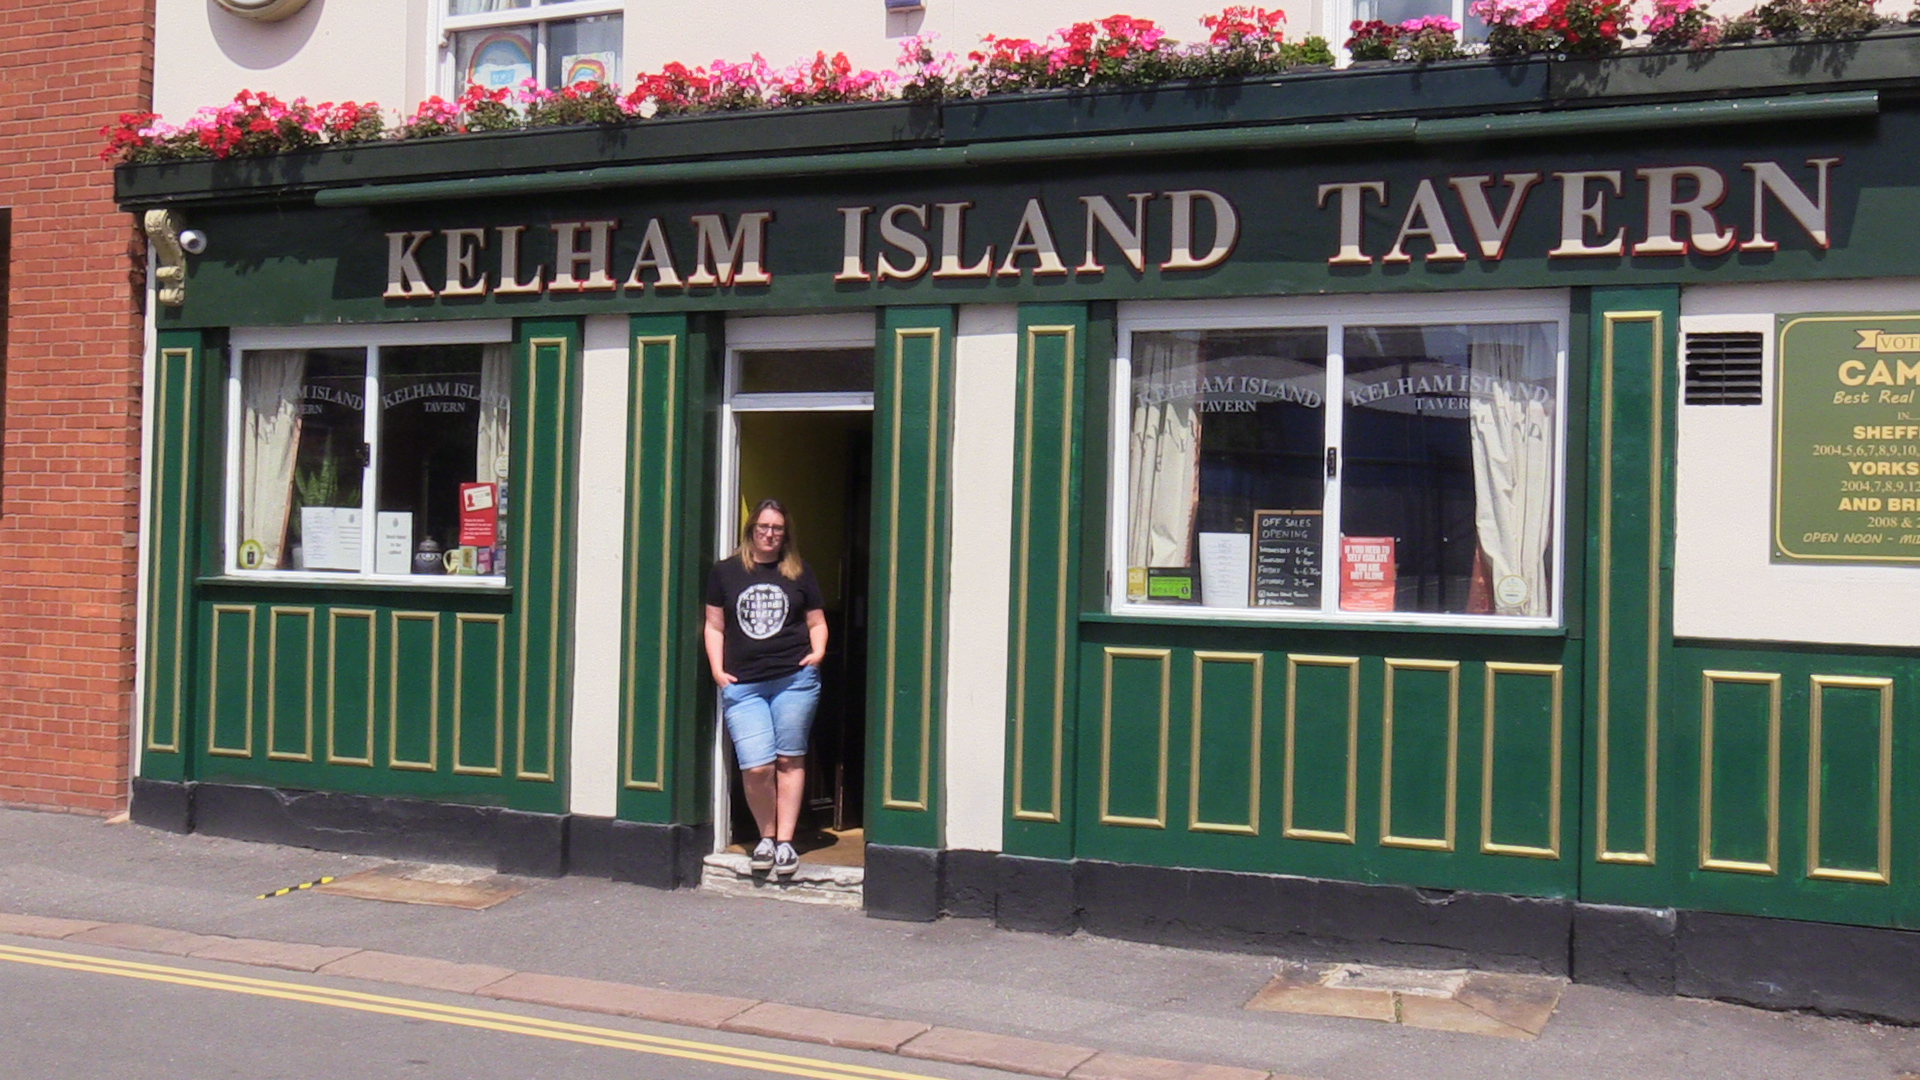 Louise Singleton, landlady of Sheffield's Kelham Island Tavern, says she has got a little over a week to work out everything from sourcing her beer to training her staff for a whole new world of table service, one-way systems and spaced-out tables, as landlords say they will be poring over the Government's guidelines to work out exactly how they will have to adapt their pubs and still survive in the new post-lockdown world.